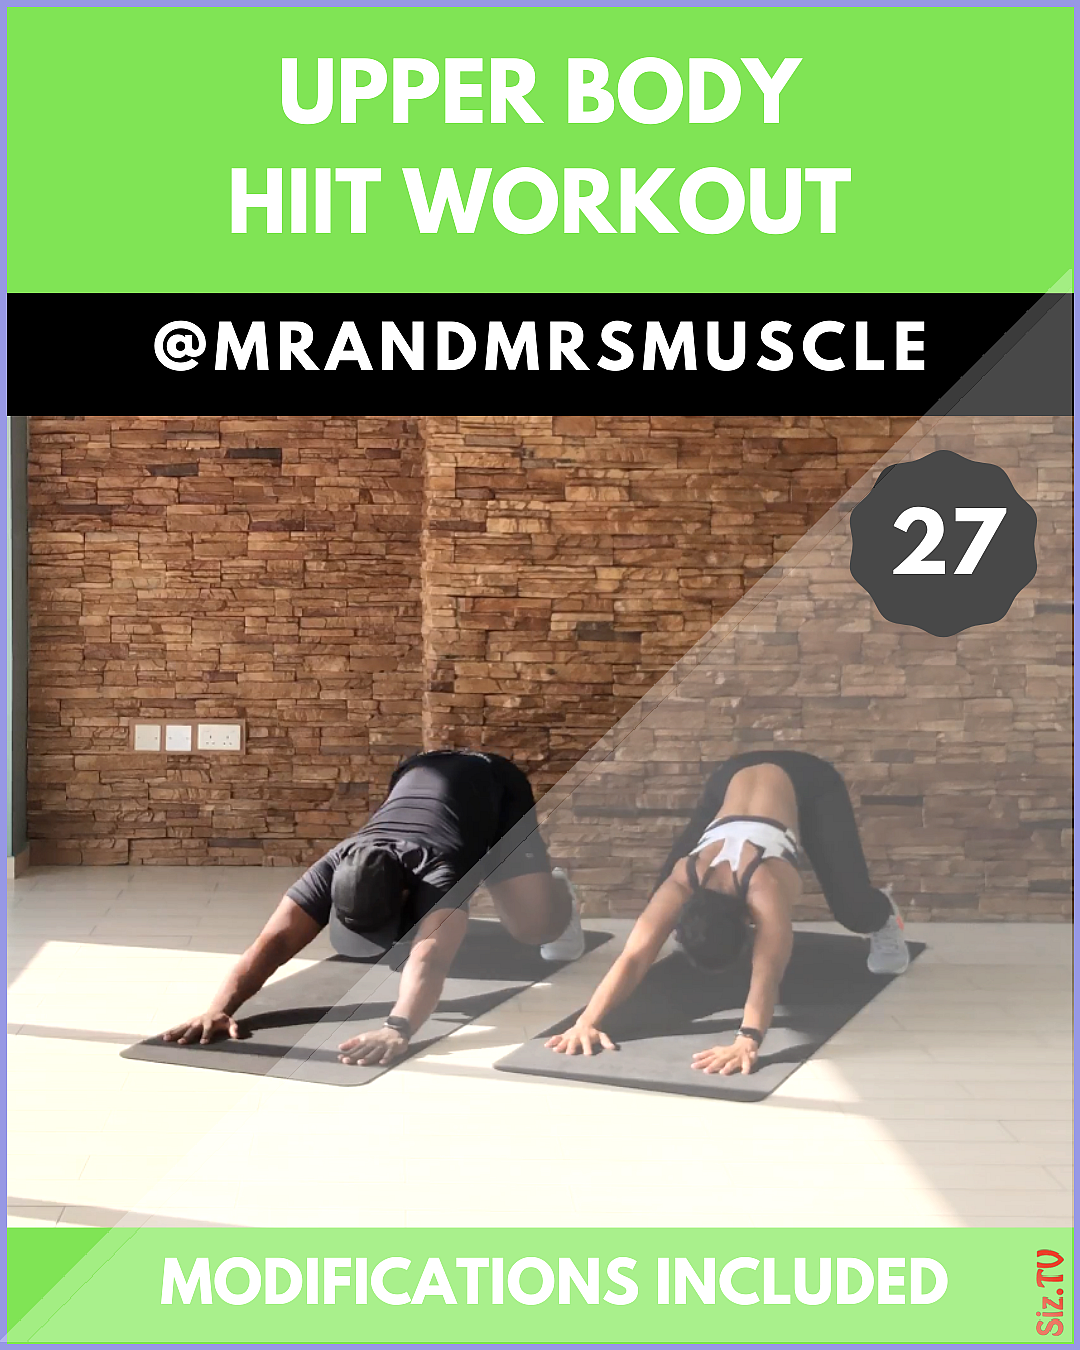 Upper Body HIIT Workout Upper Body HIIT Workout MrandMrsMuscle mrandmrsmuscle Upper Body Train your...